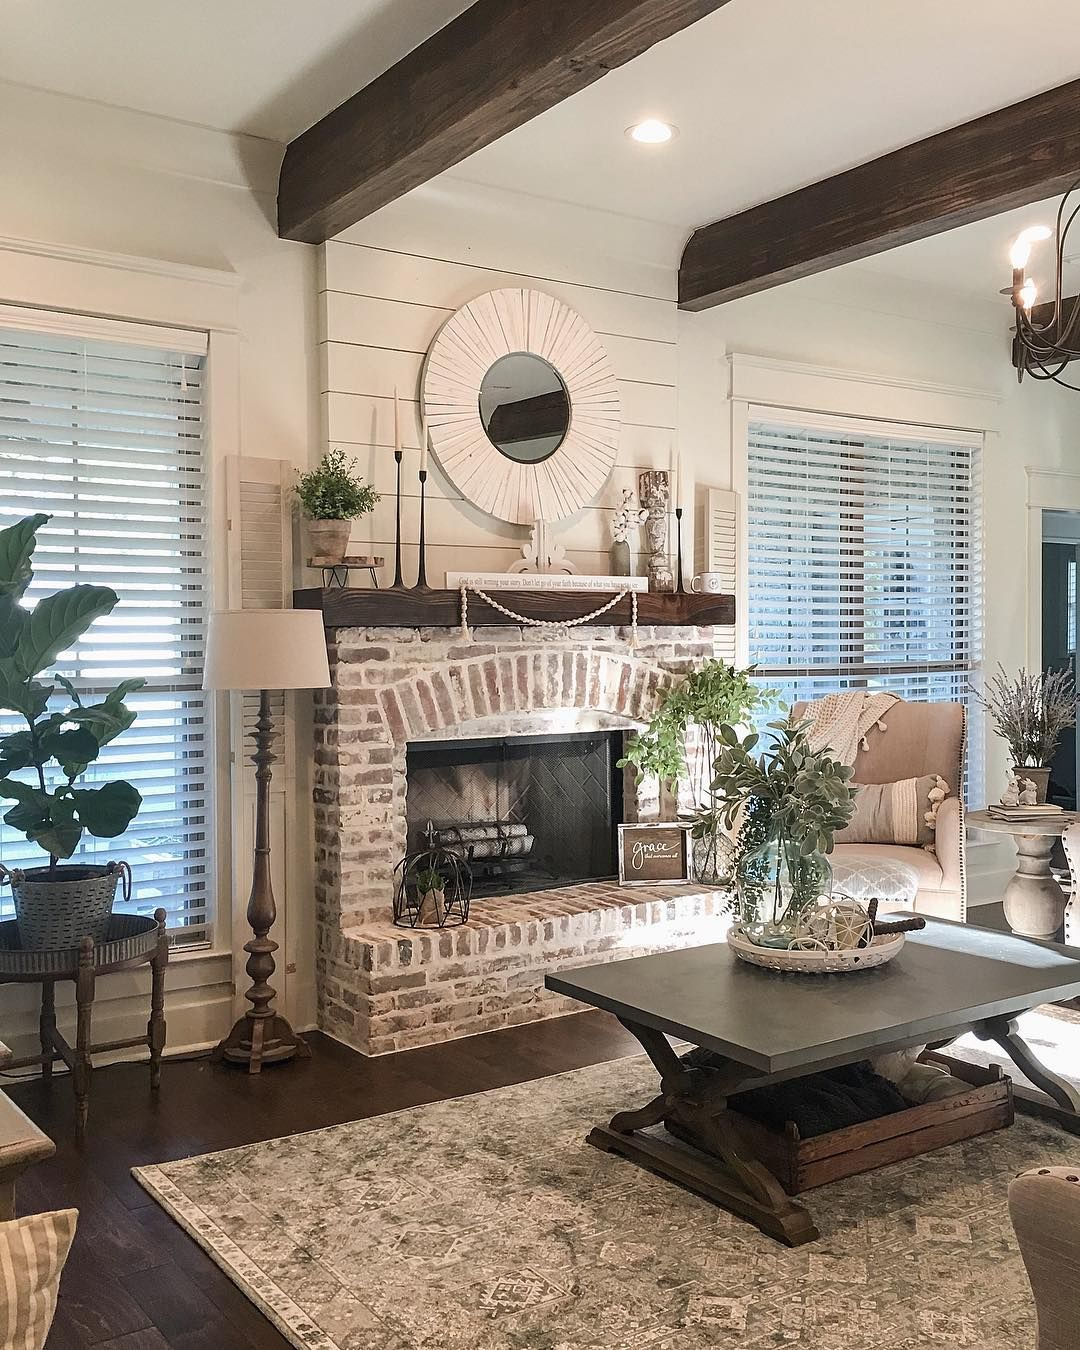 Amy on instagram  chappy happy friday what   the agenda for this weekend  think  going to break out fall decor late game also rustic chic living room decoration ideas rh pinterest